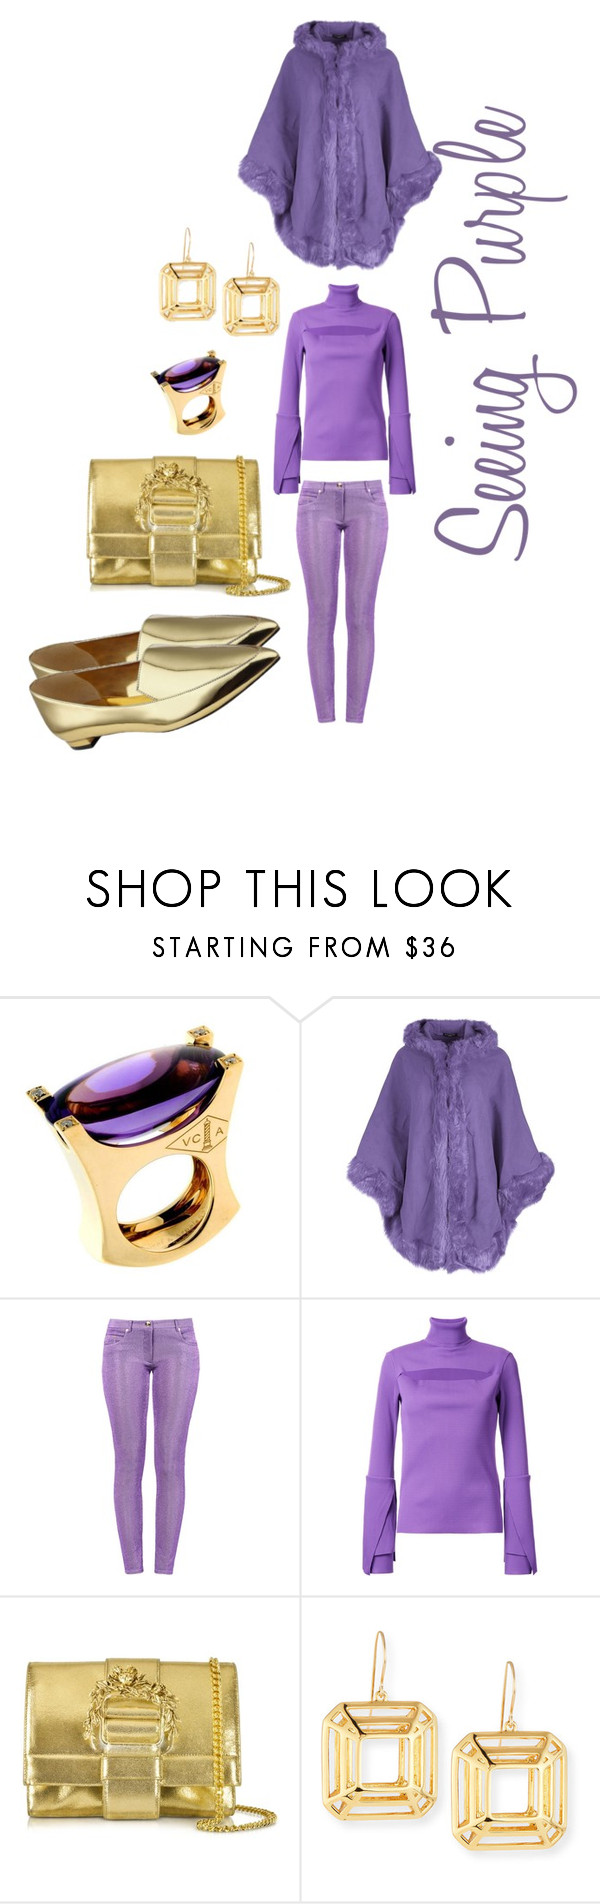 """Seeing Purple"" by michelle858 ❤ liked on Polyvore featuring Van Cleef & Arpels, Boutique Moschino, G.V.G.V., Roberto Cavalli, NEST Jewelry, Nine West, Winter, purple, 2016 and goldjewelry"